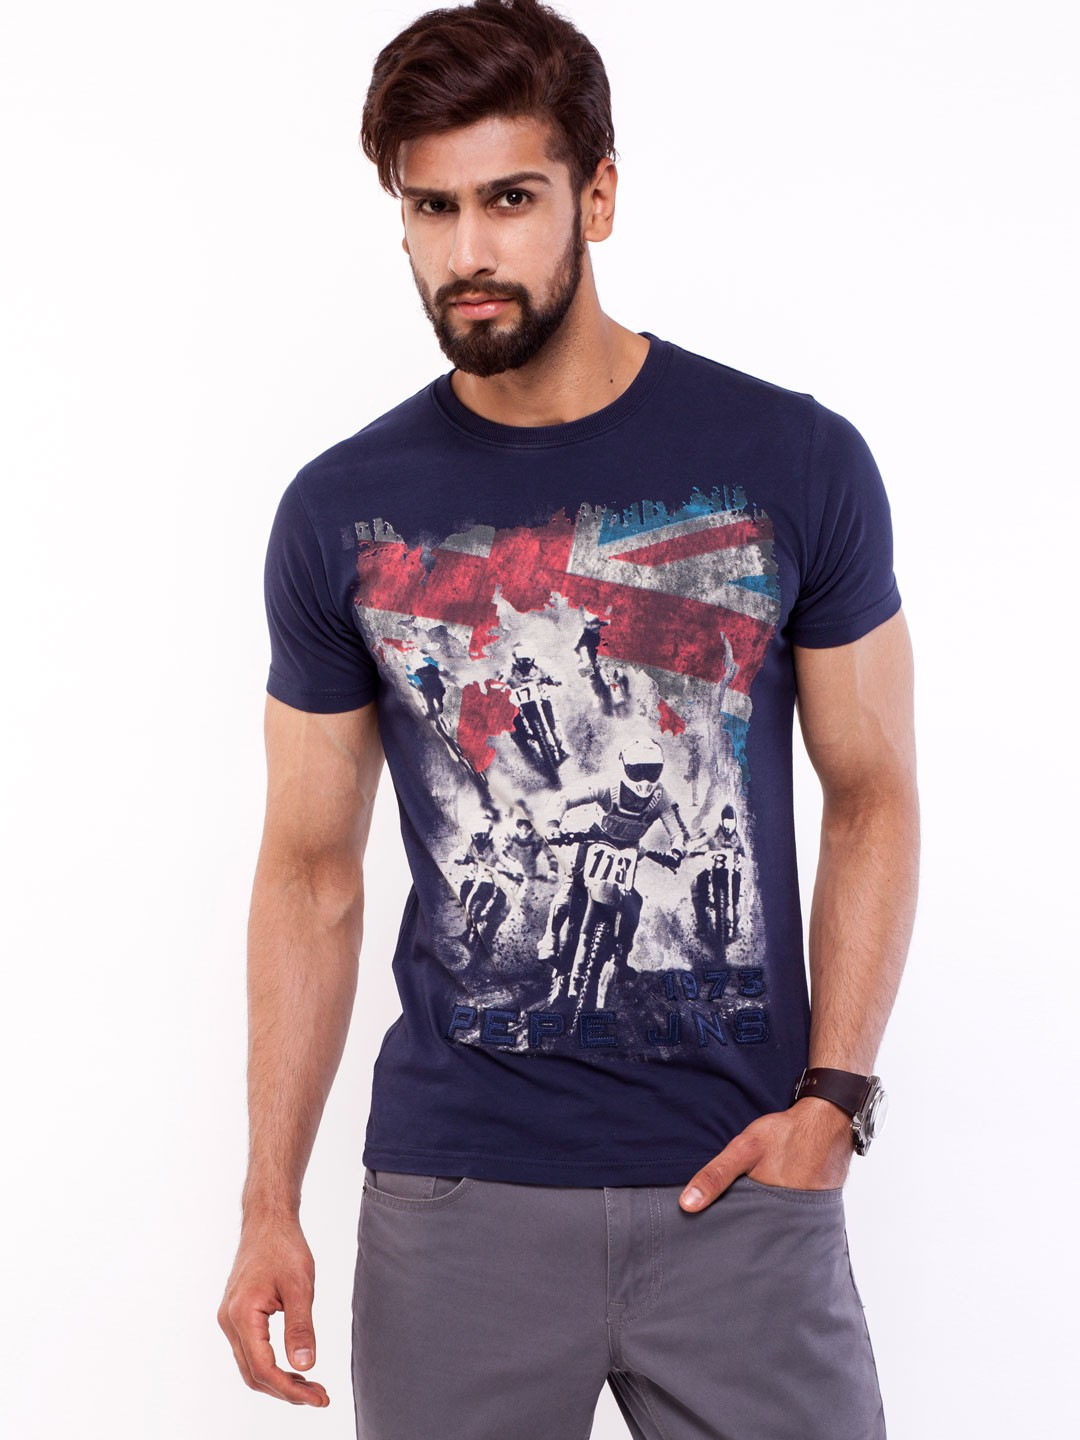 buy pepe jeans bikers print t shirt for men men 39 s navy t shirts. Black Bedroom Furniture Sets. Home Design Ideas